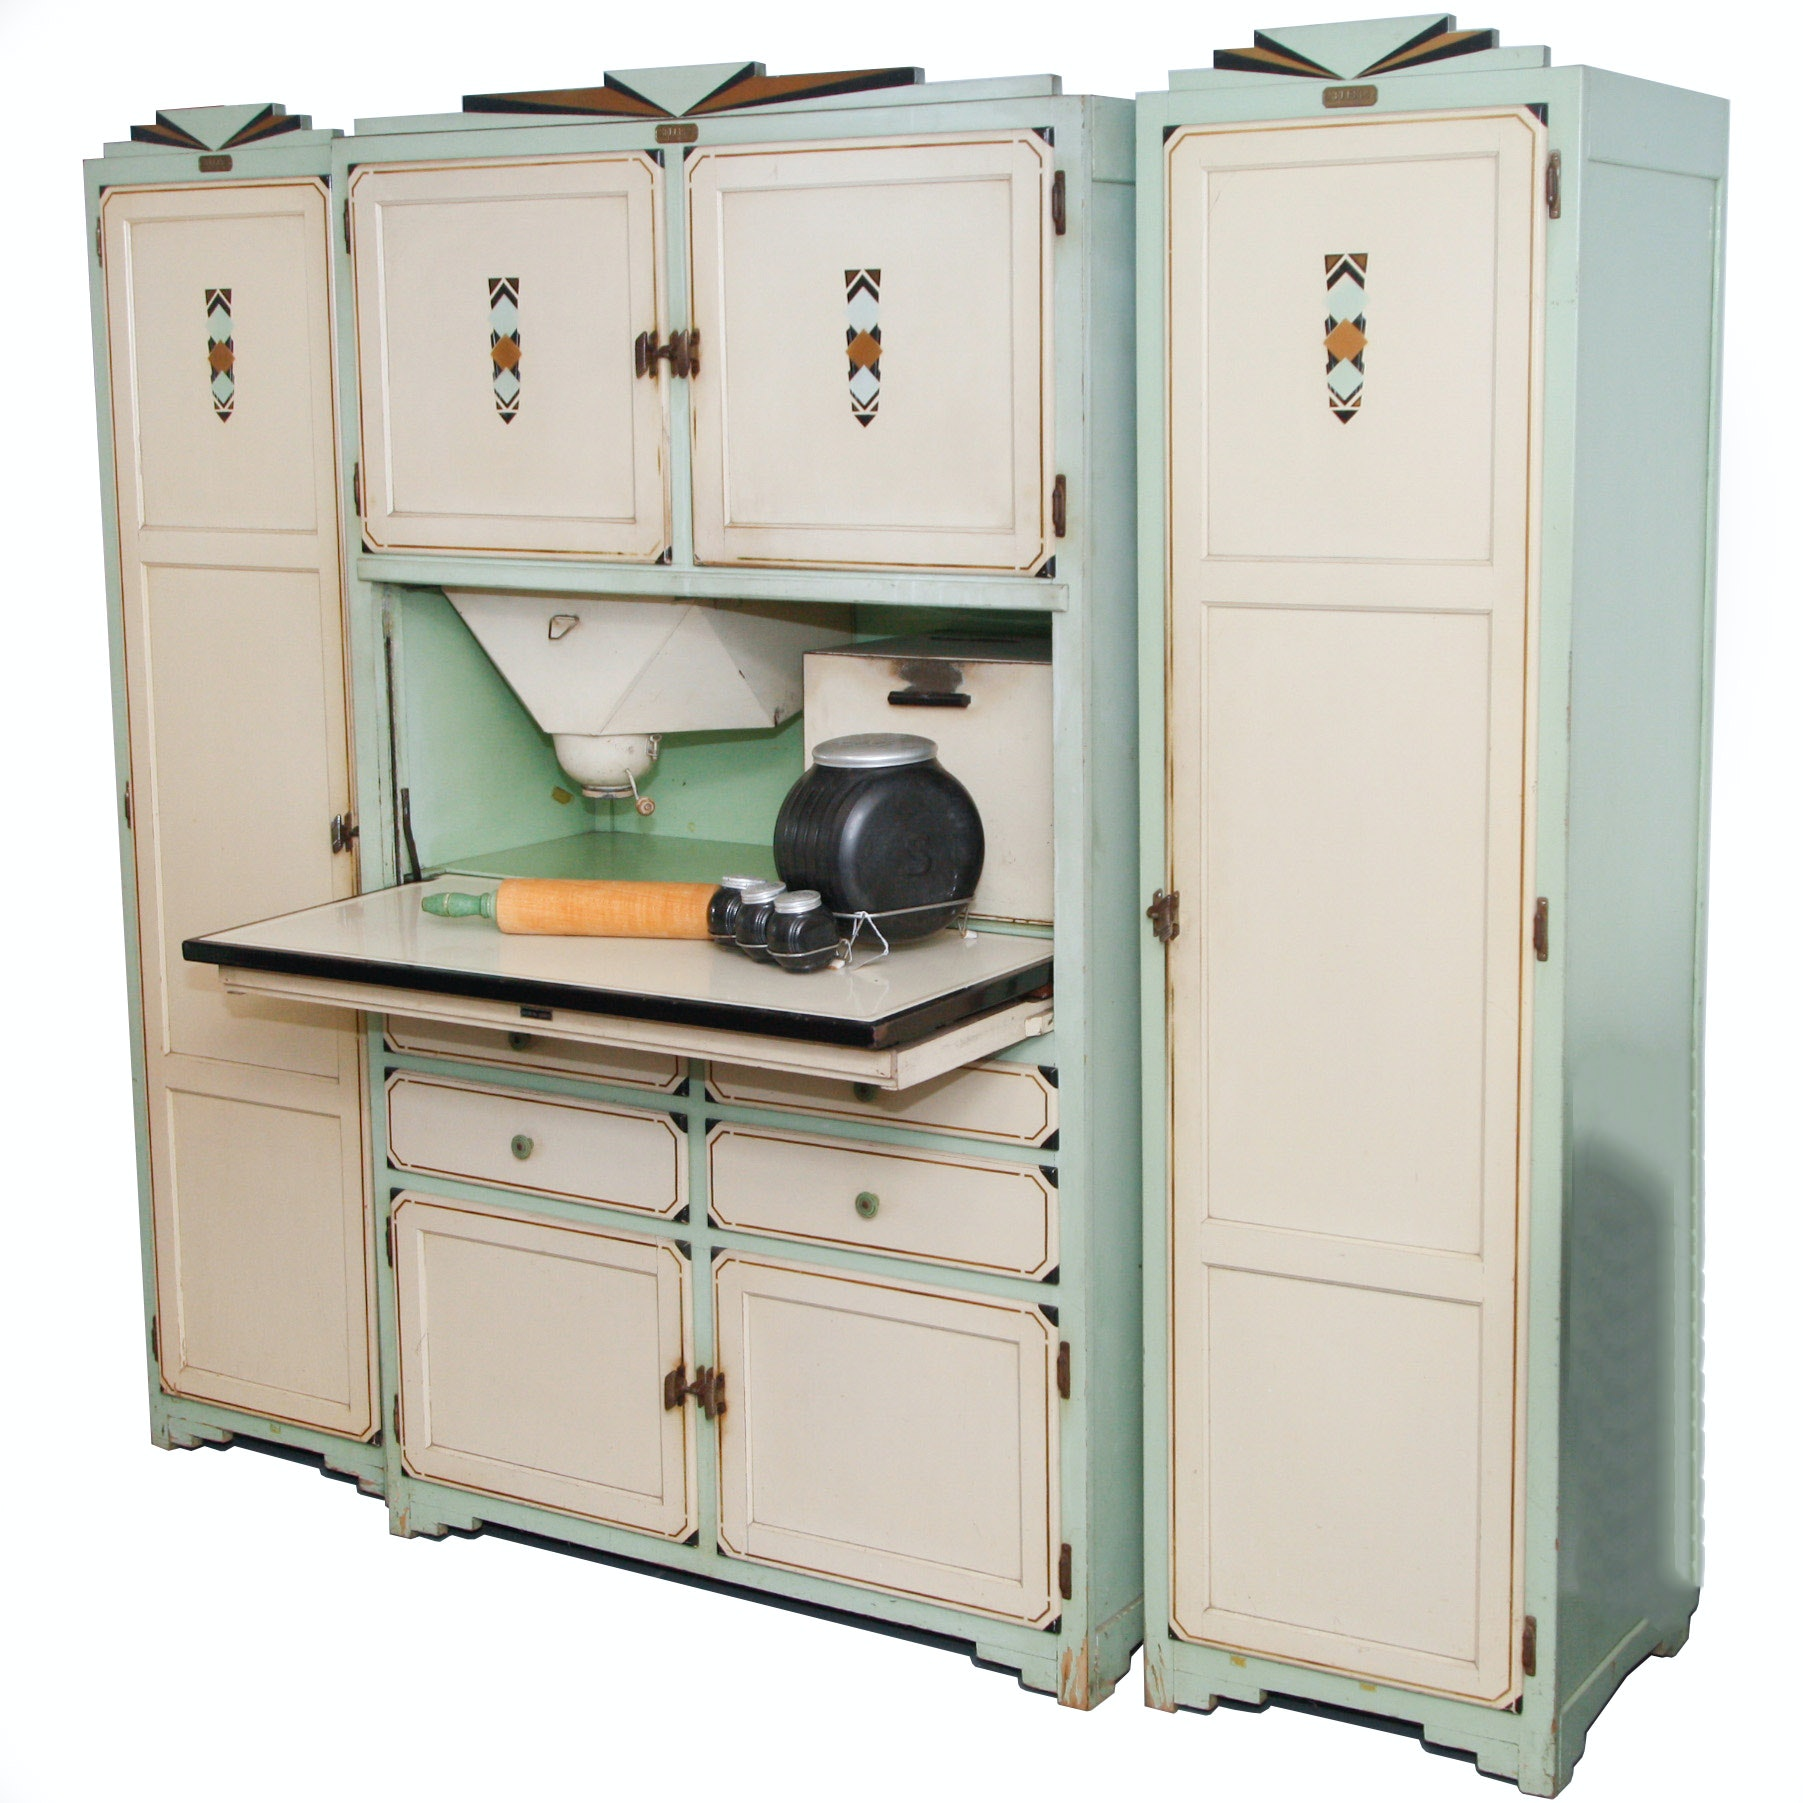 sellers kitchen cabinet for sale antique sellers three baker s kitchen wall unit ebth 7890